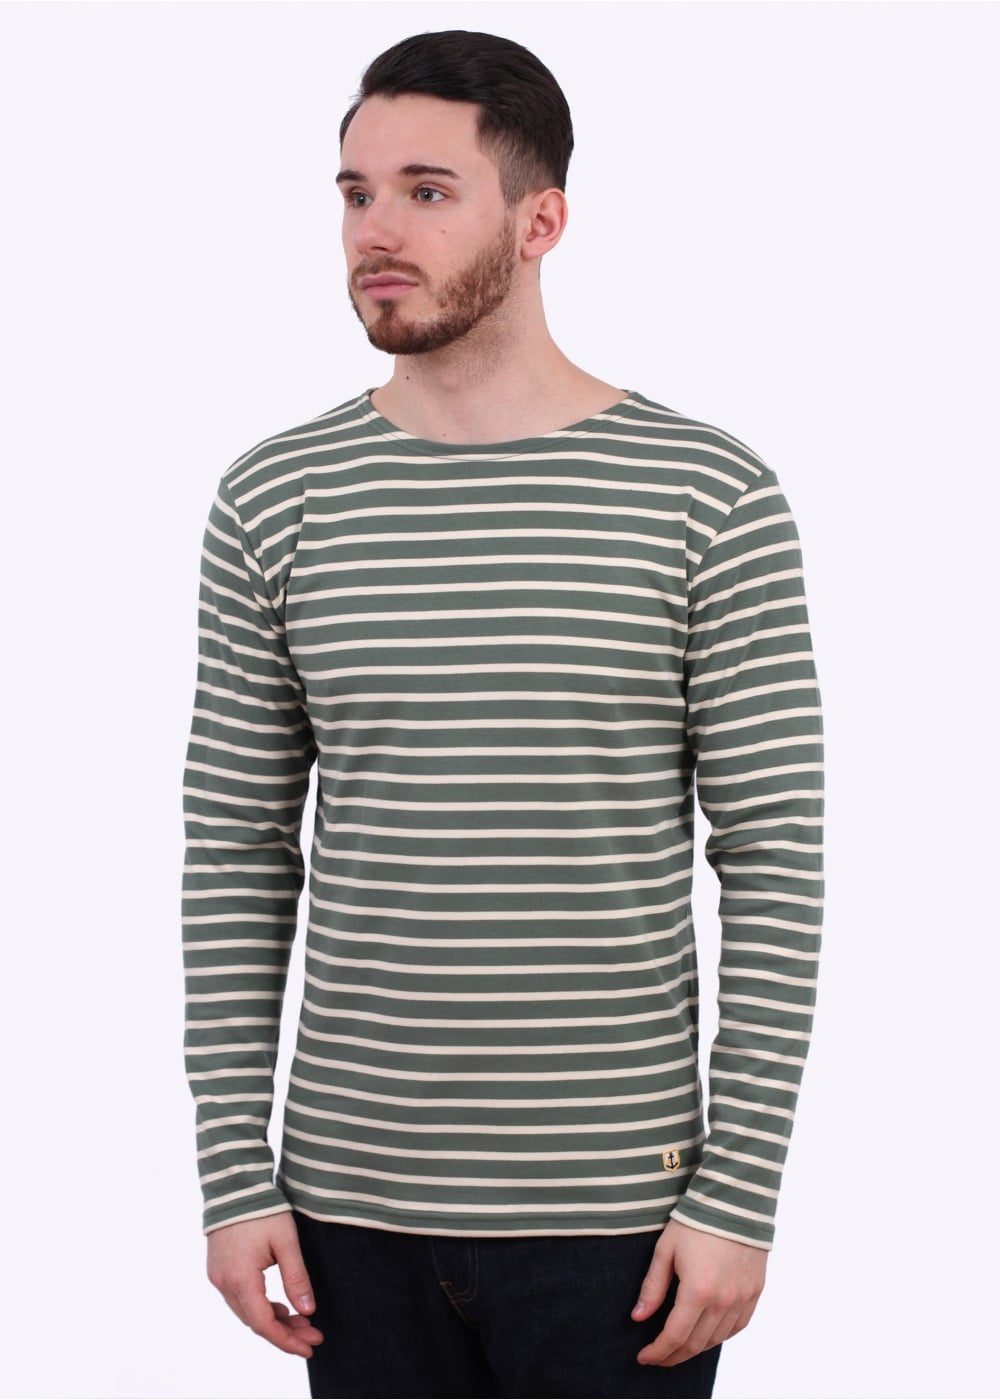 Breton T Shirt found in: Long Sleeve Breton, Detailed Breton T-shirt, Fun Breton T-shirt, Crew Neck Breton, Short Sleeve Breton, Breton T-shirt, Breton T-shirt, Action Breton T-shirt, Lena Breton, Fun Breton, Make A Statement.